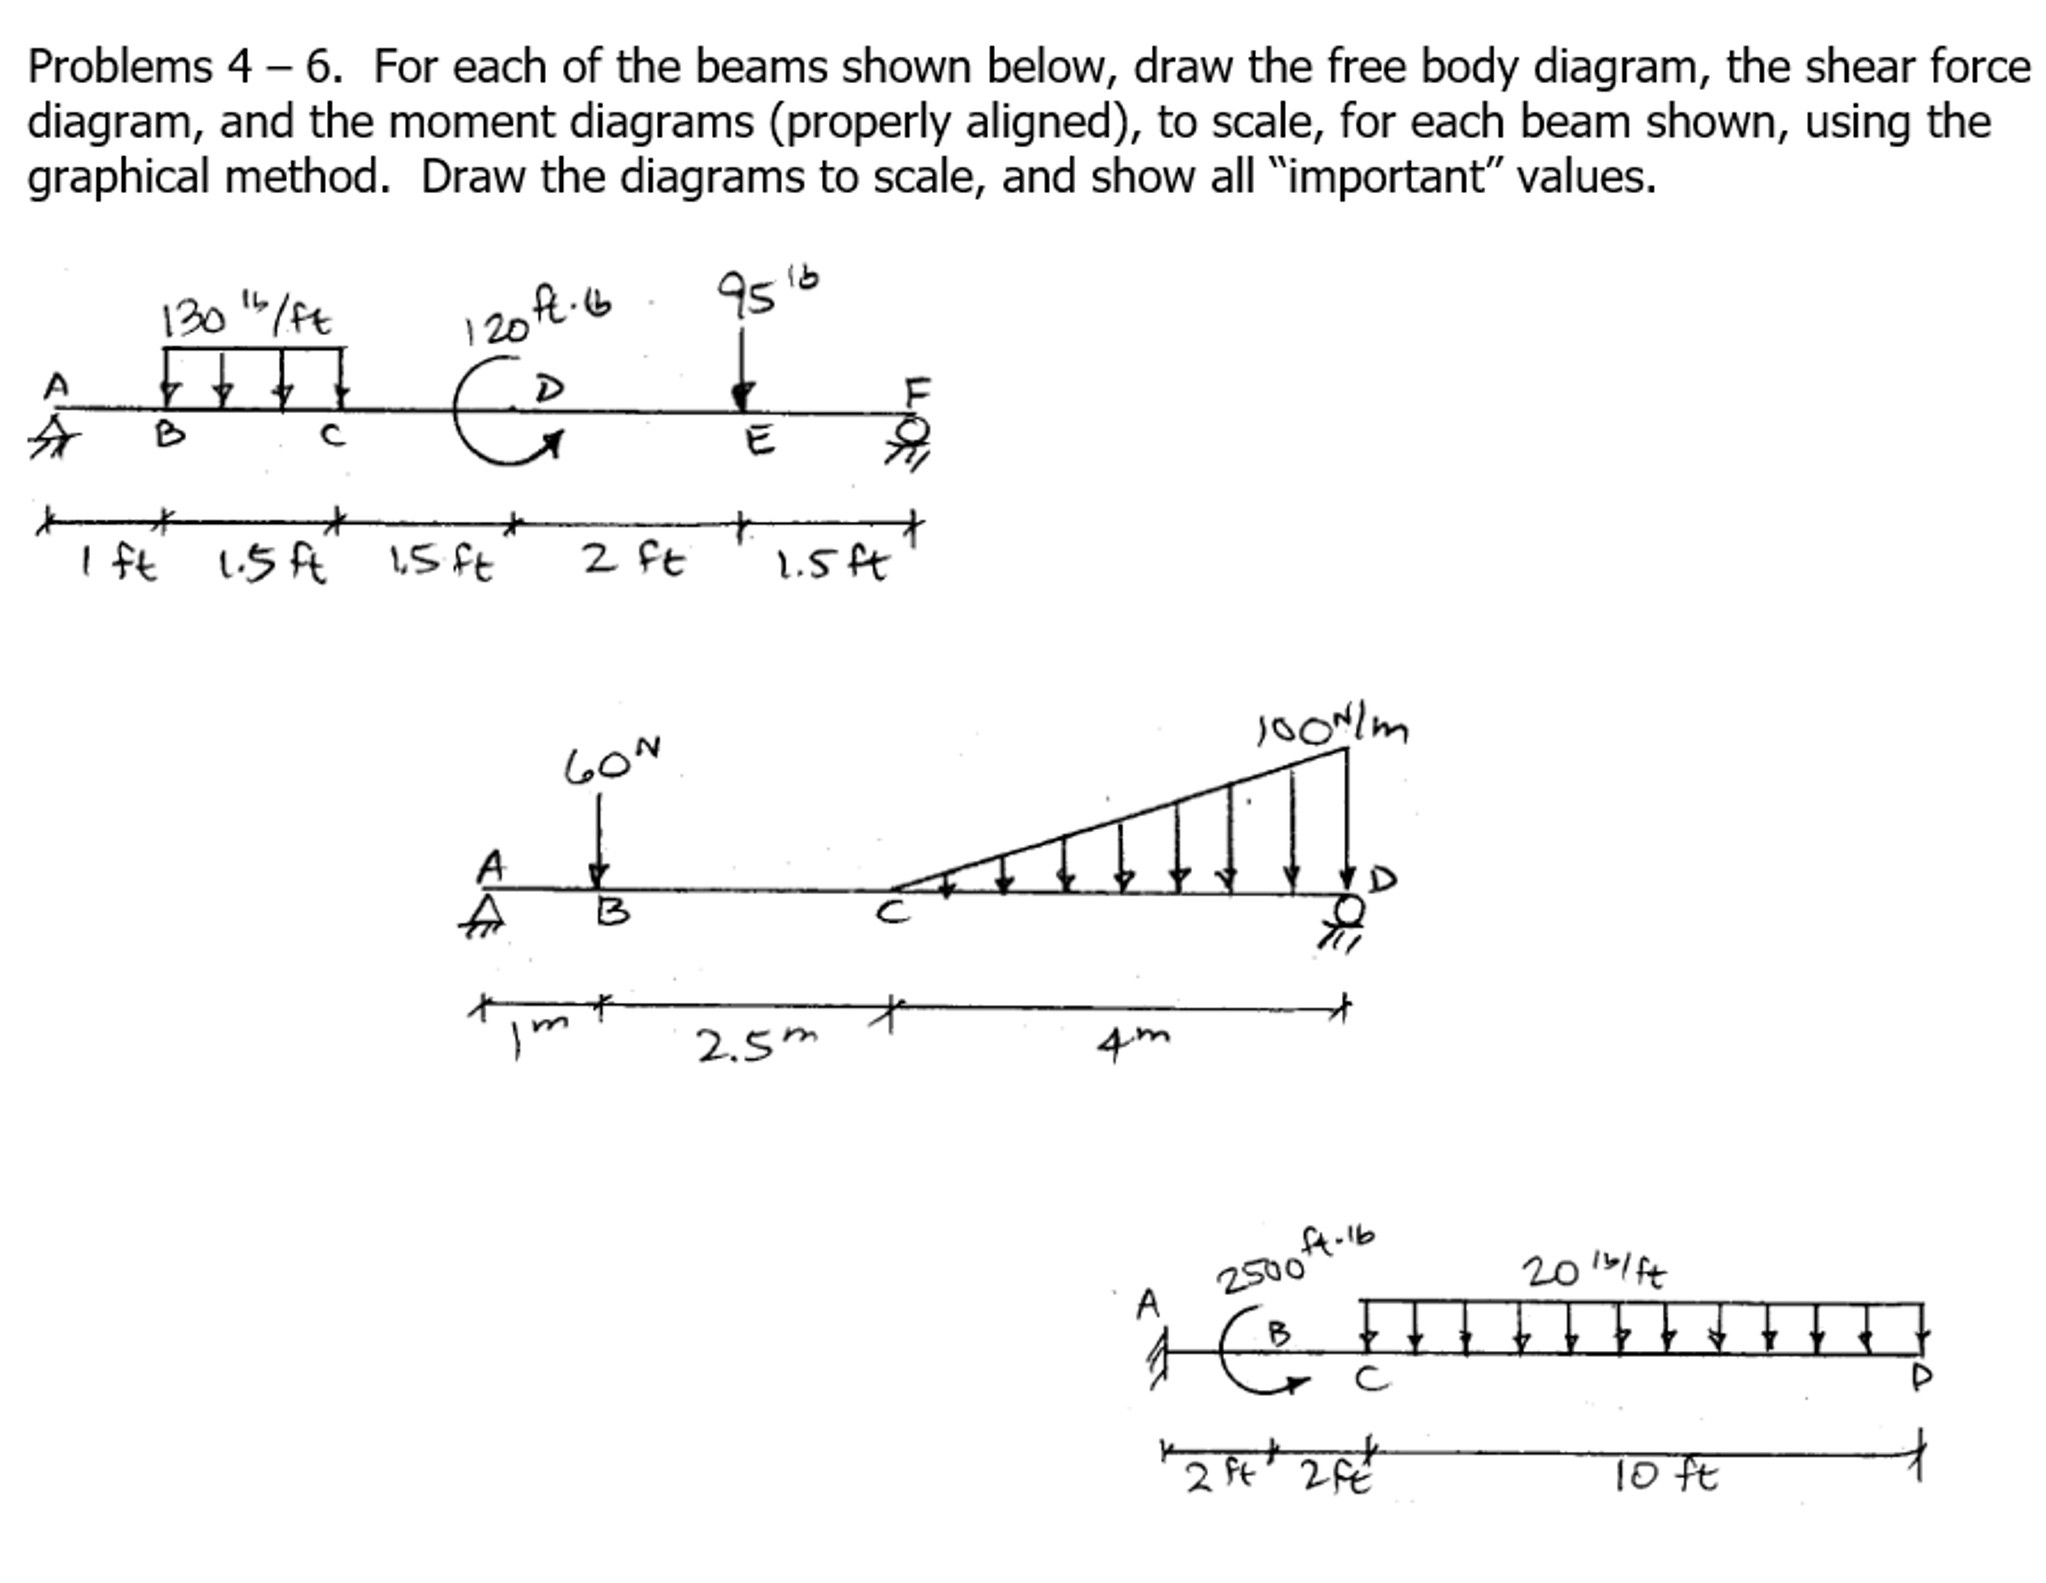 Engineering Mechanics Free Body Diagram Draw A Free Body Diagram the Ring at A Unique Ktu Be 100 Of Engineering Mechanics Free Body Diagram